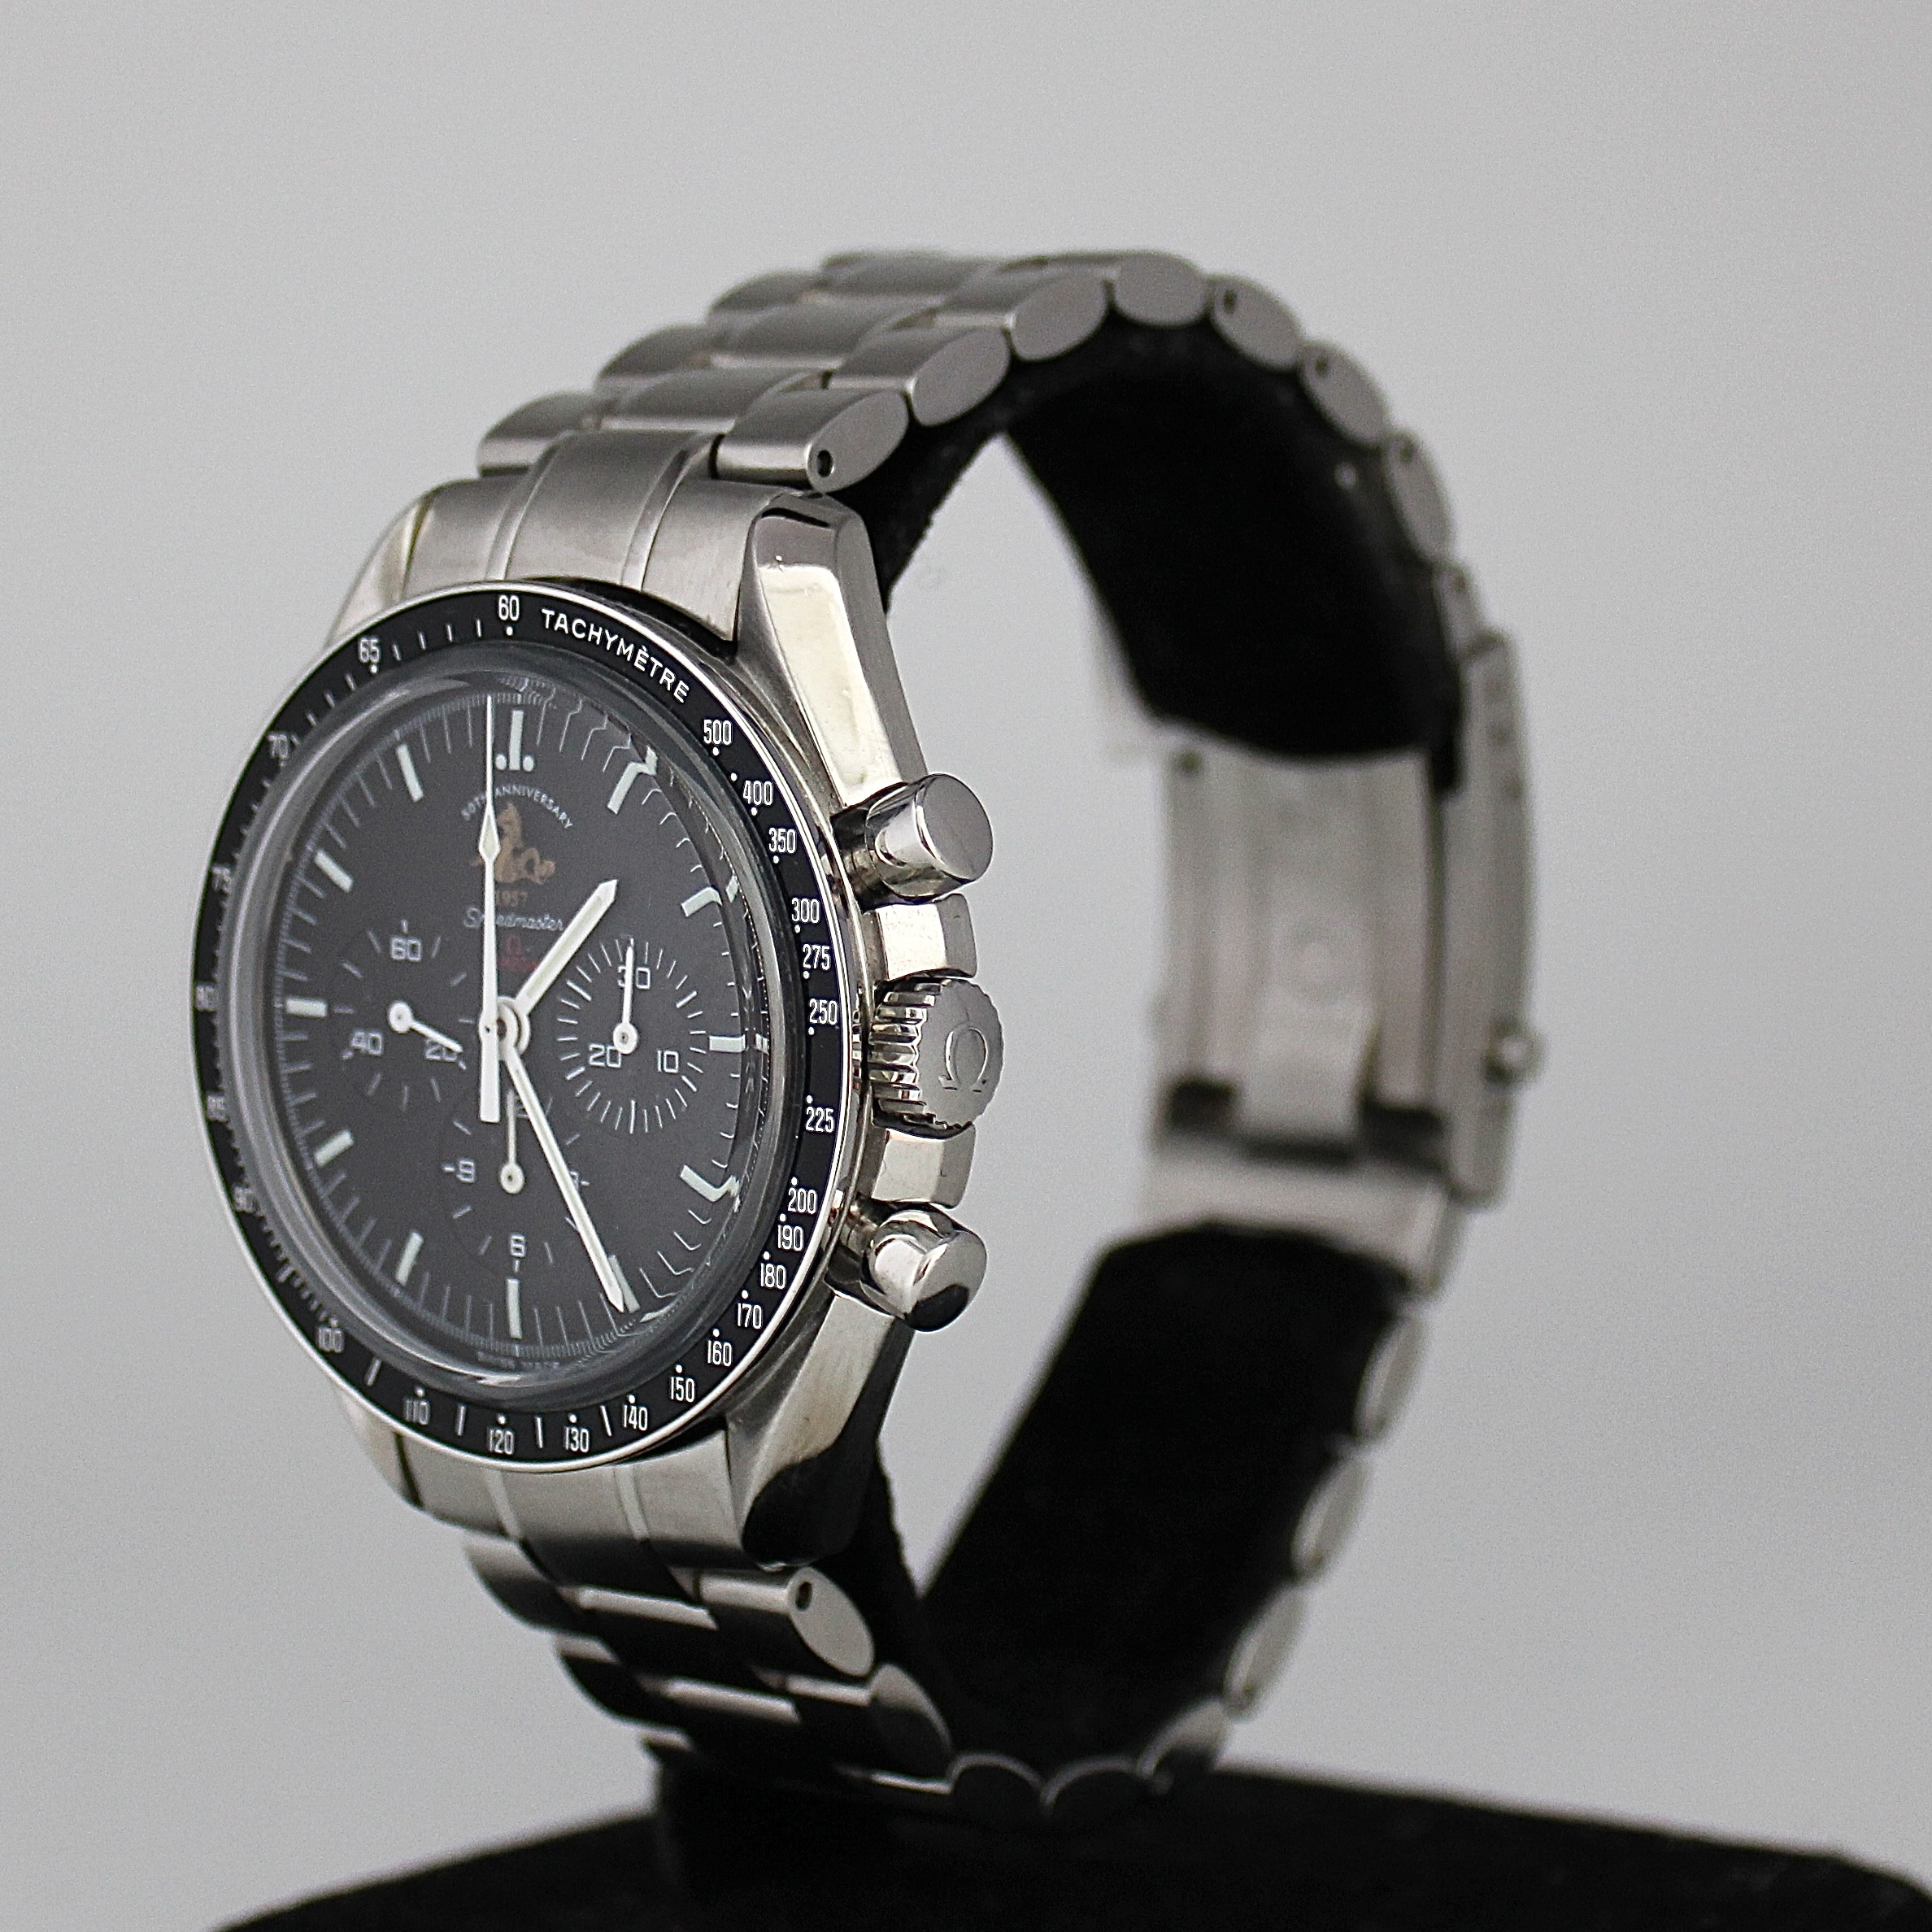 Omega Speedmaster Limted Series The First And Only Watch ref 311.30.42.30.01.001 - Image 2 of 5